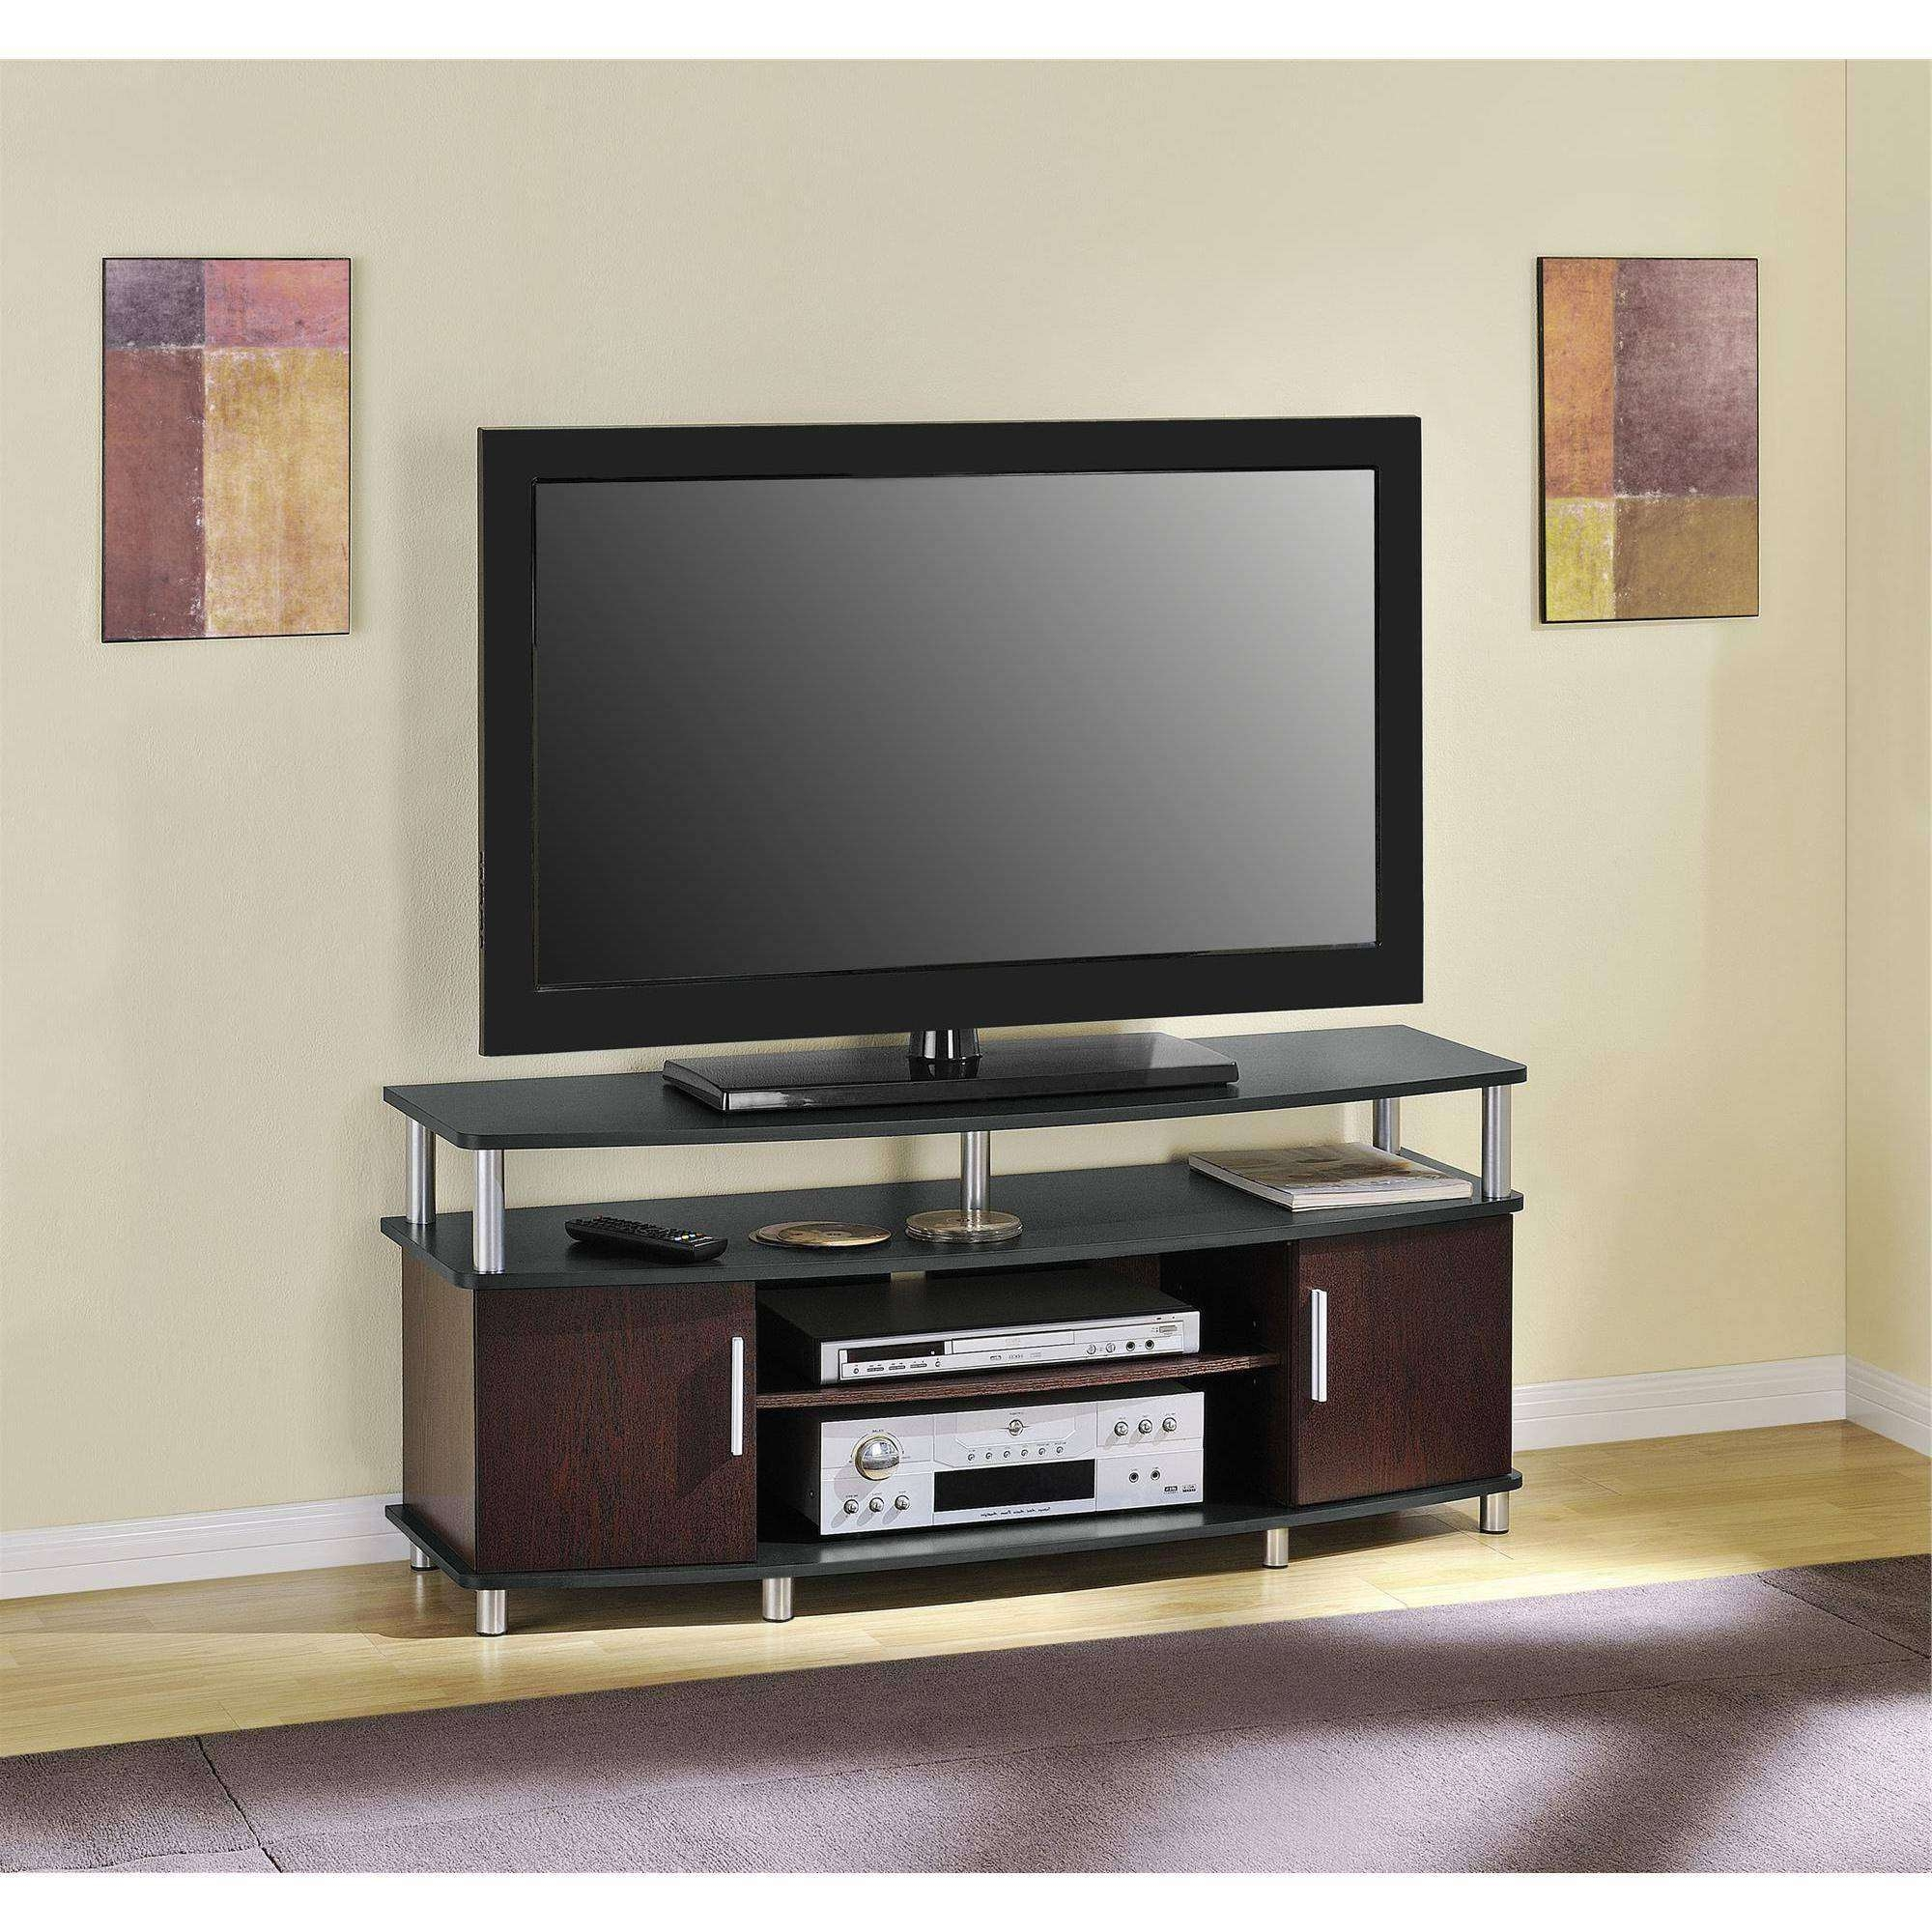 Fancy Tv Stands For 60 Inch Flat Screens 50 On Modern Home Decor In Fancy Tv Stands (View 6 of 15)